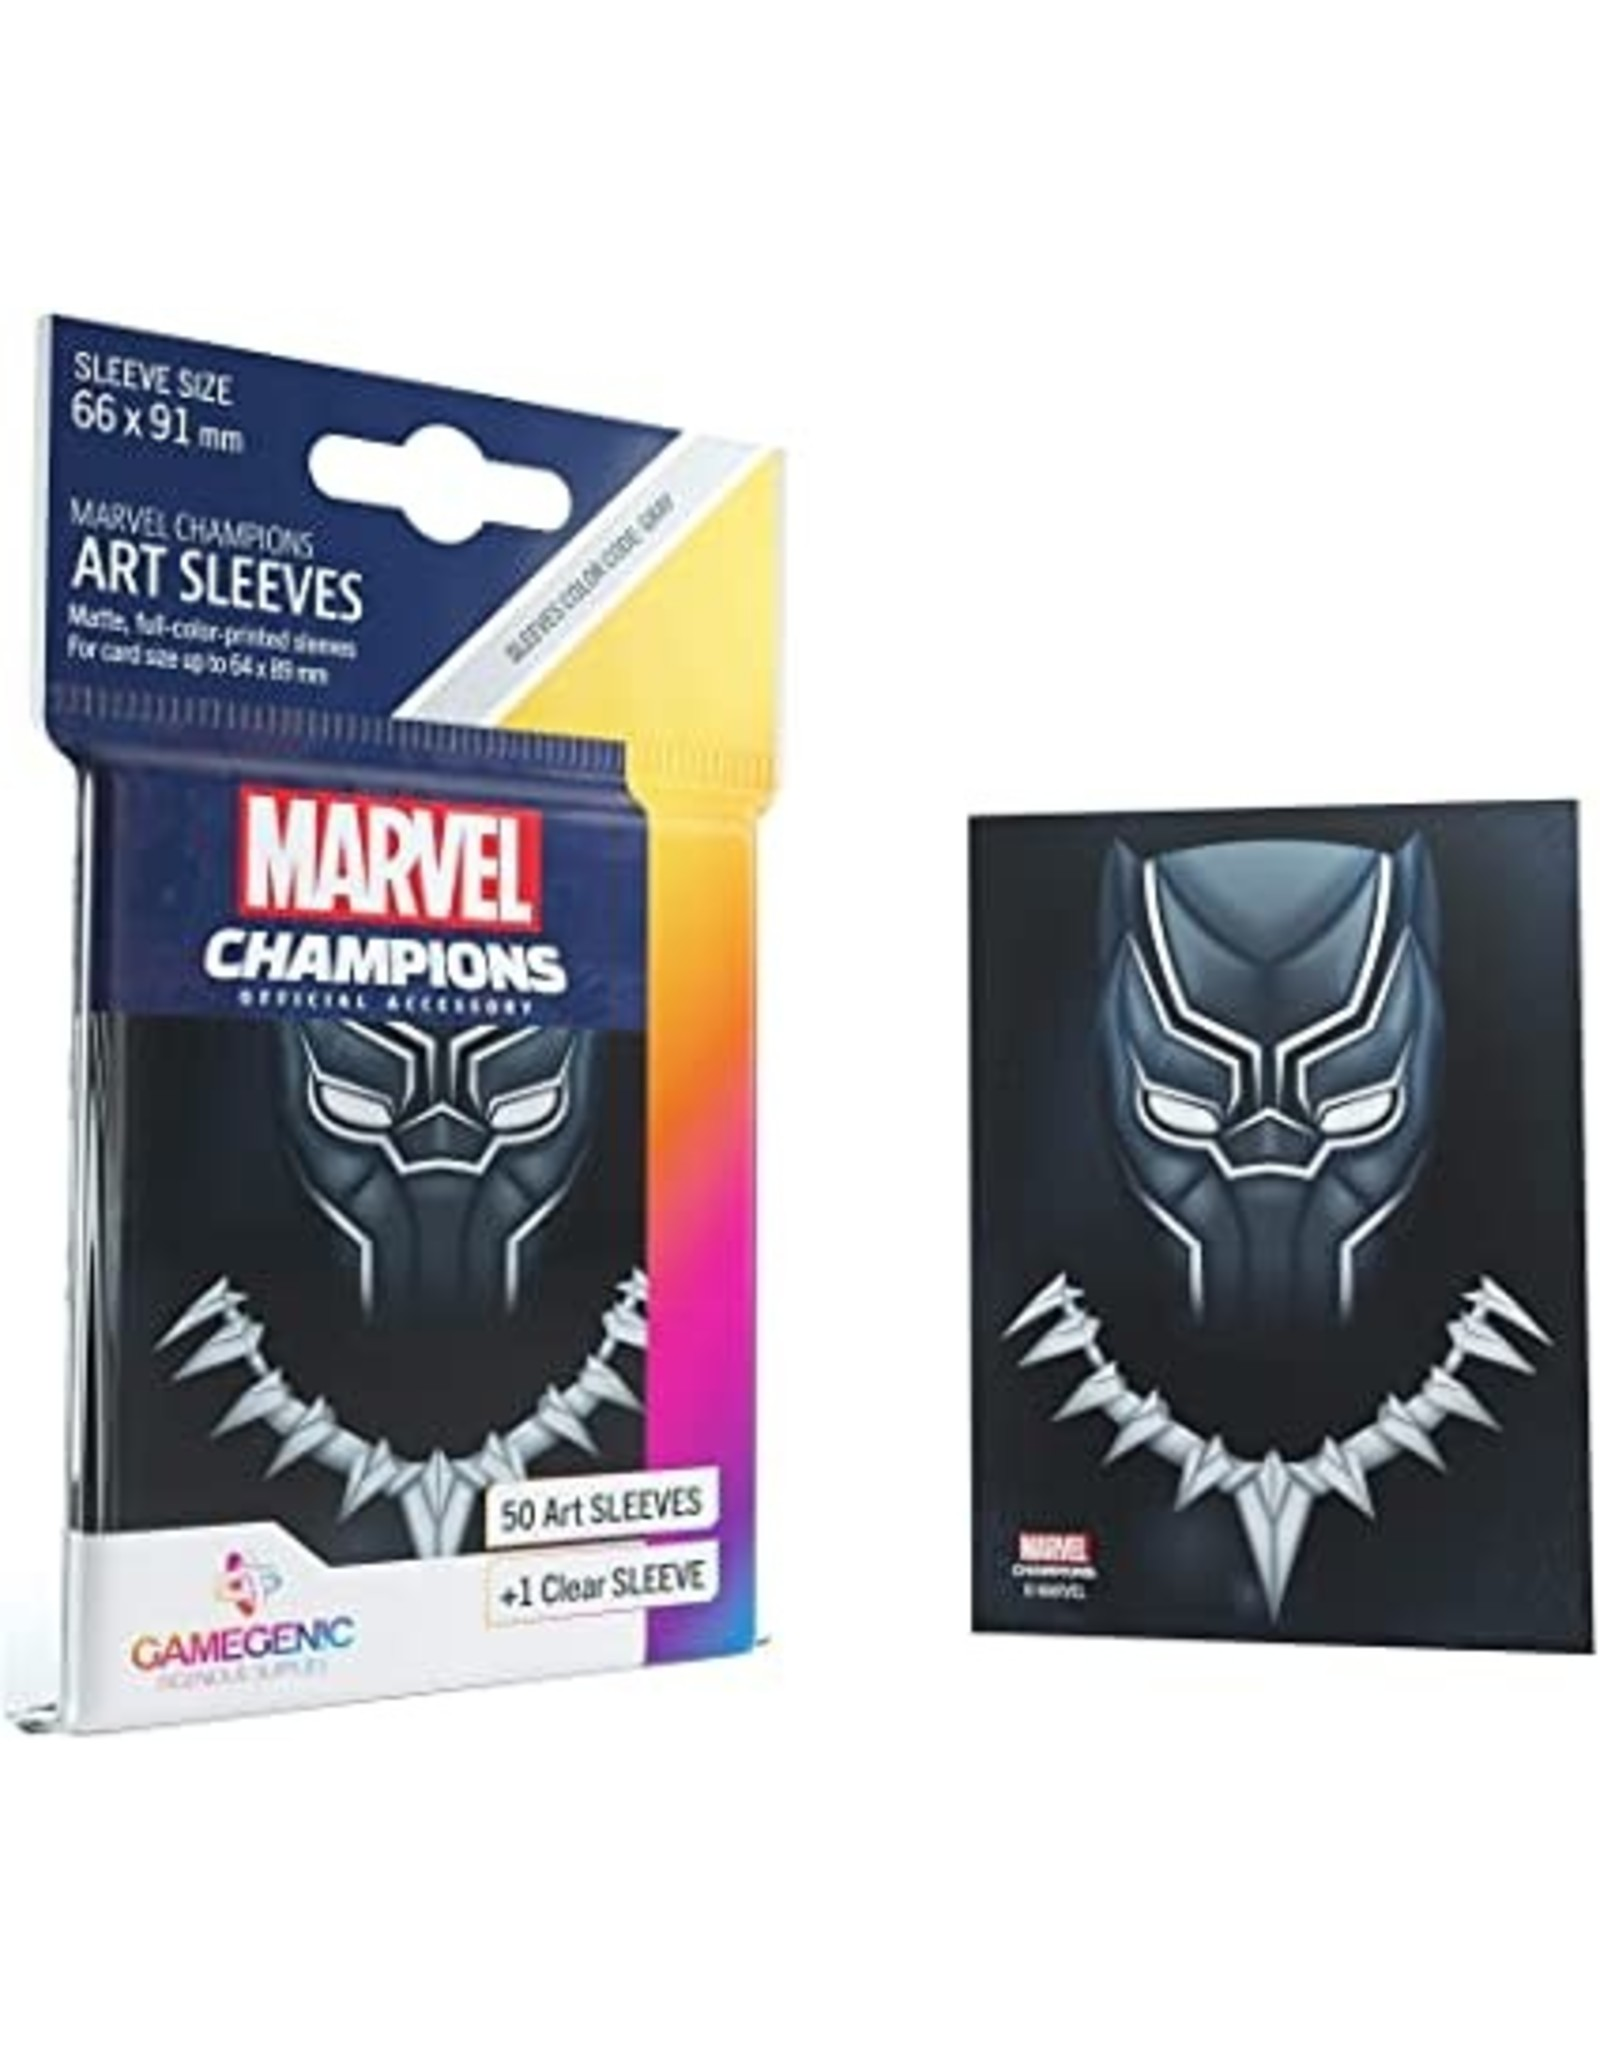 GameGenic DP: Marvel Champions Art Sleeves - Black Panther